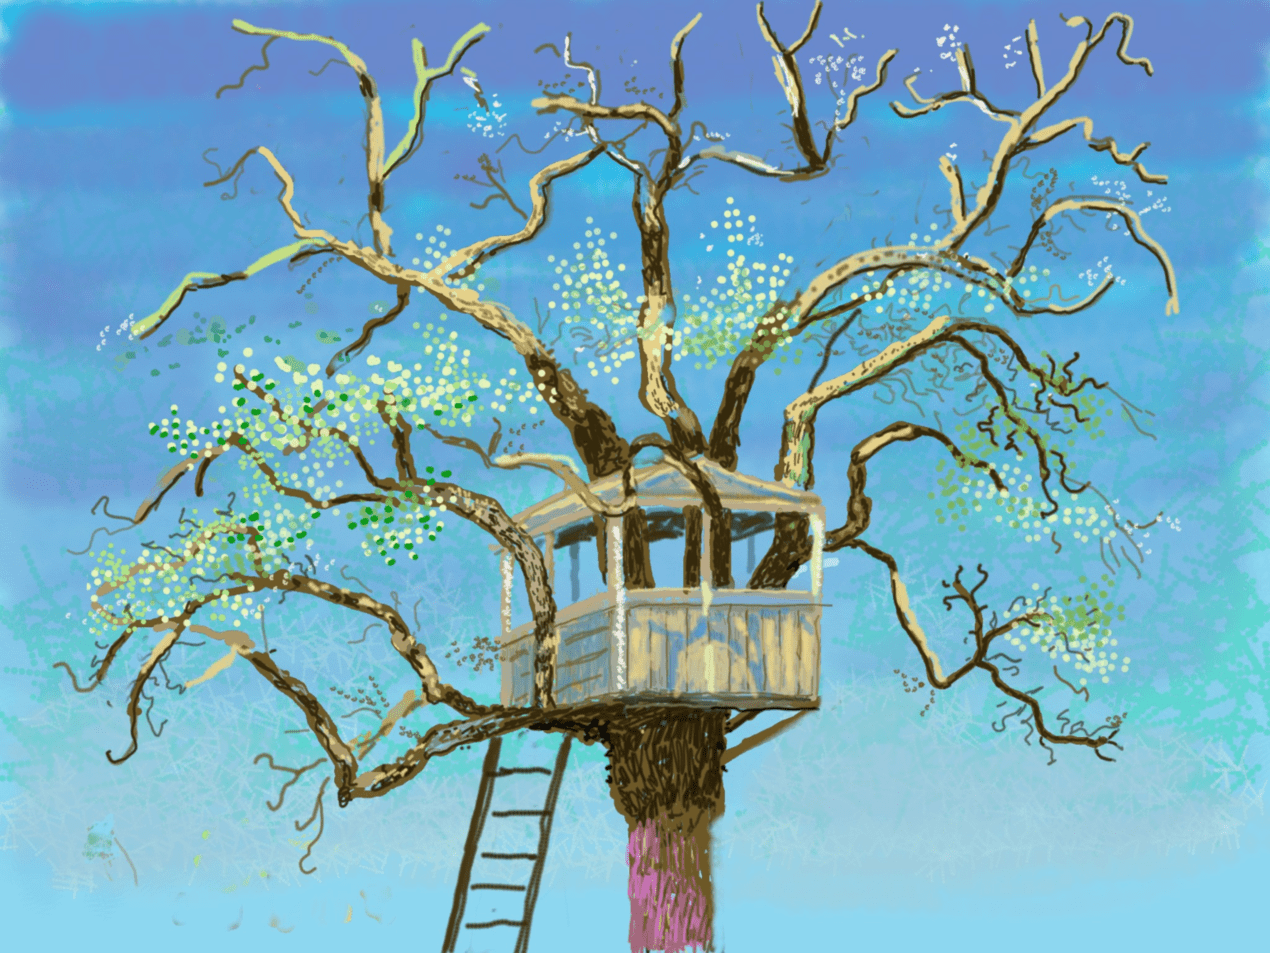 David Hockney iPad painting of a treehouse in Normandy